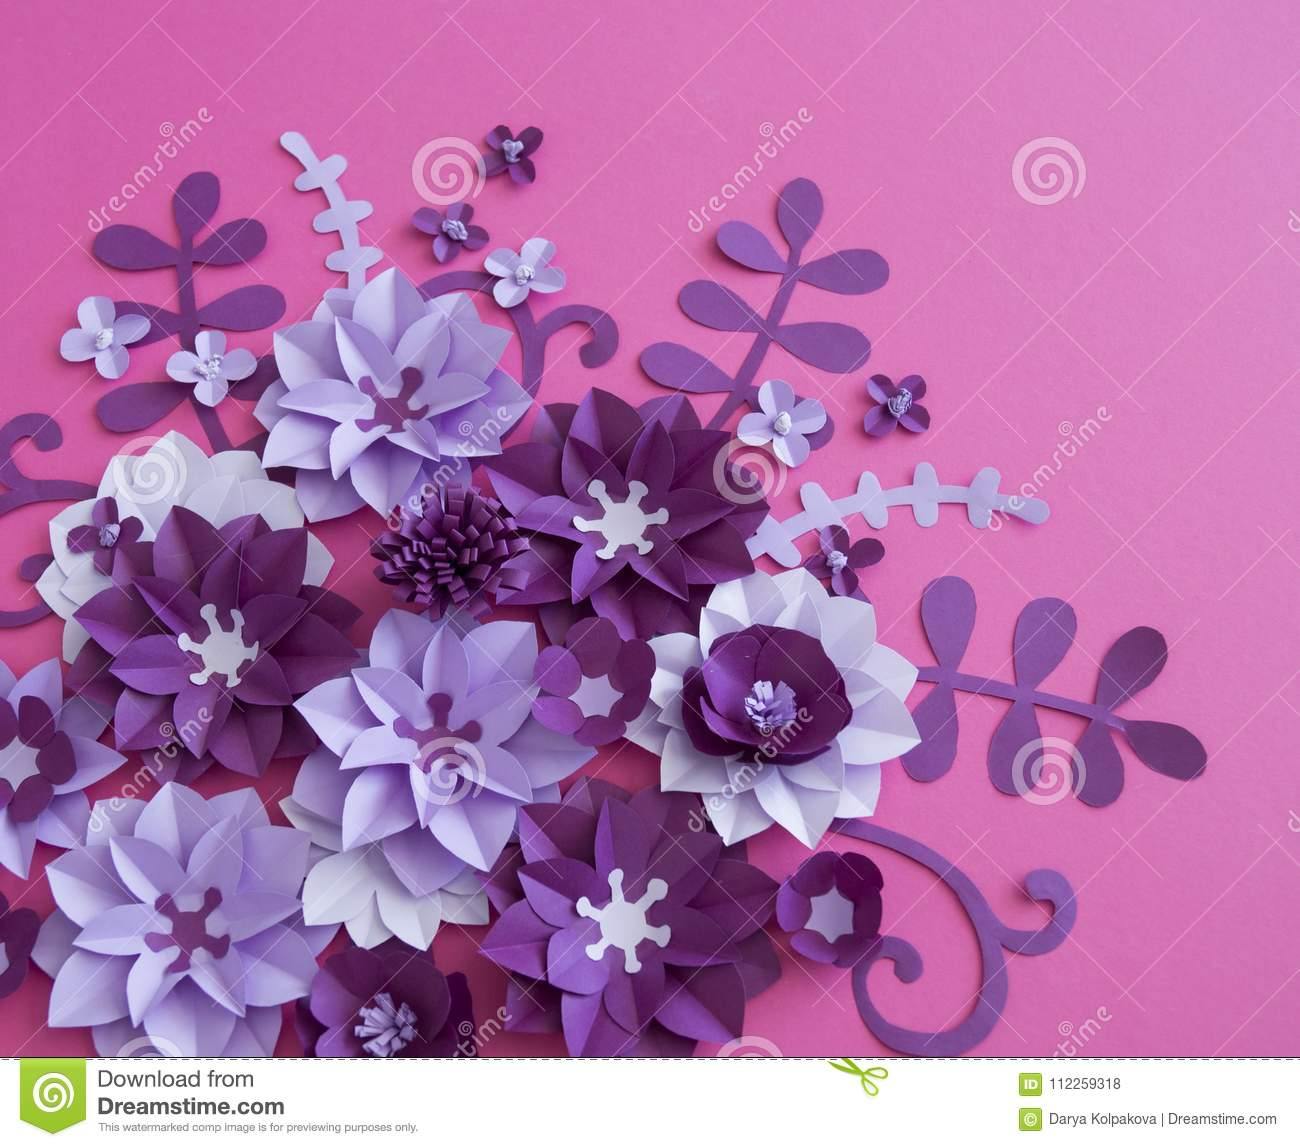 Flower Plant Floral Nature Designs Stock Photo Image Of Handmade